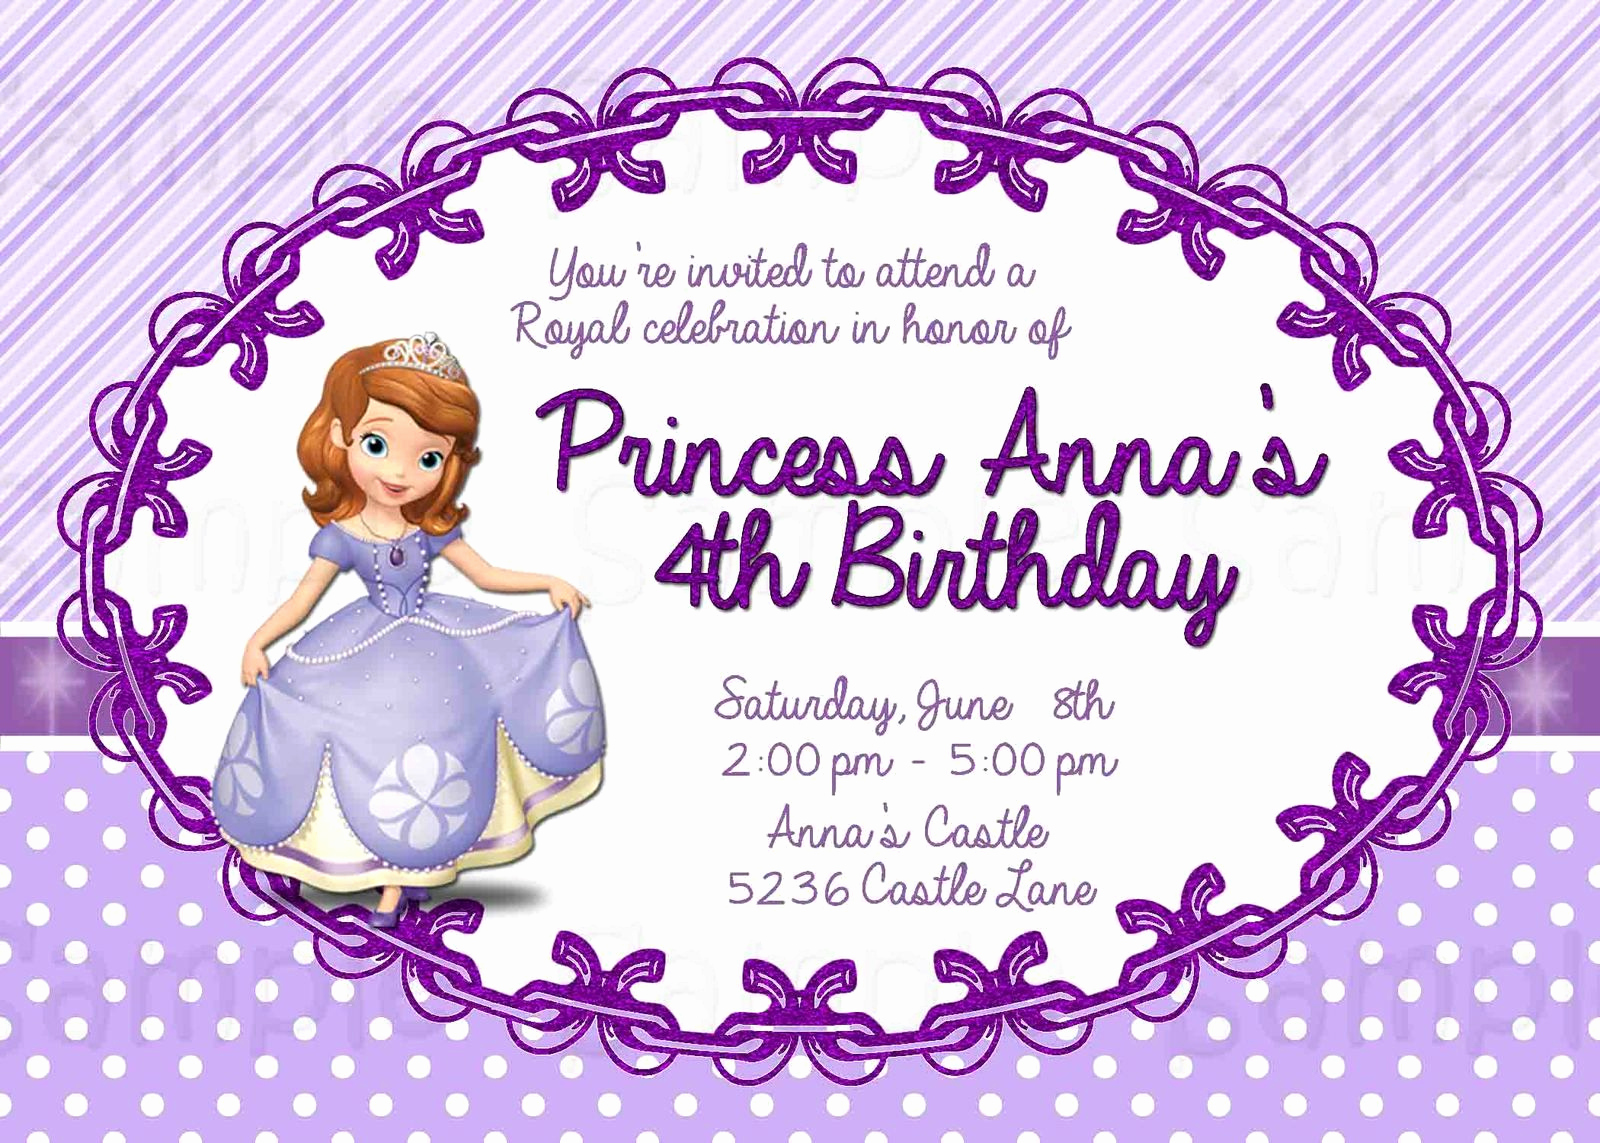 Sofia the First Invitation Template Elegant Pin by Emi Kat On Princess sofia the First